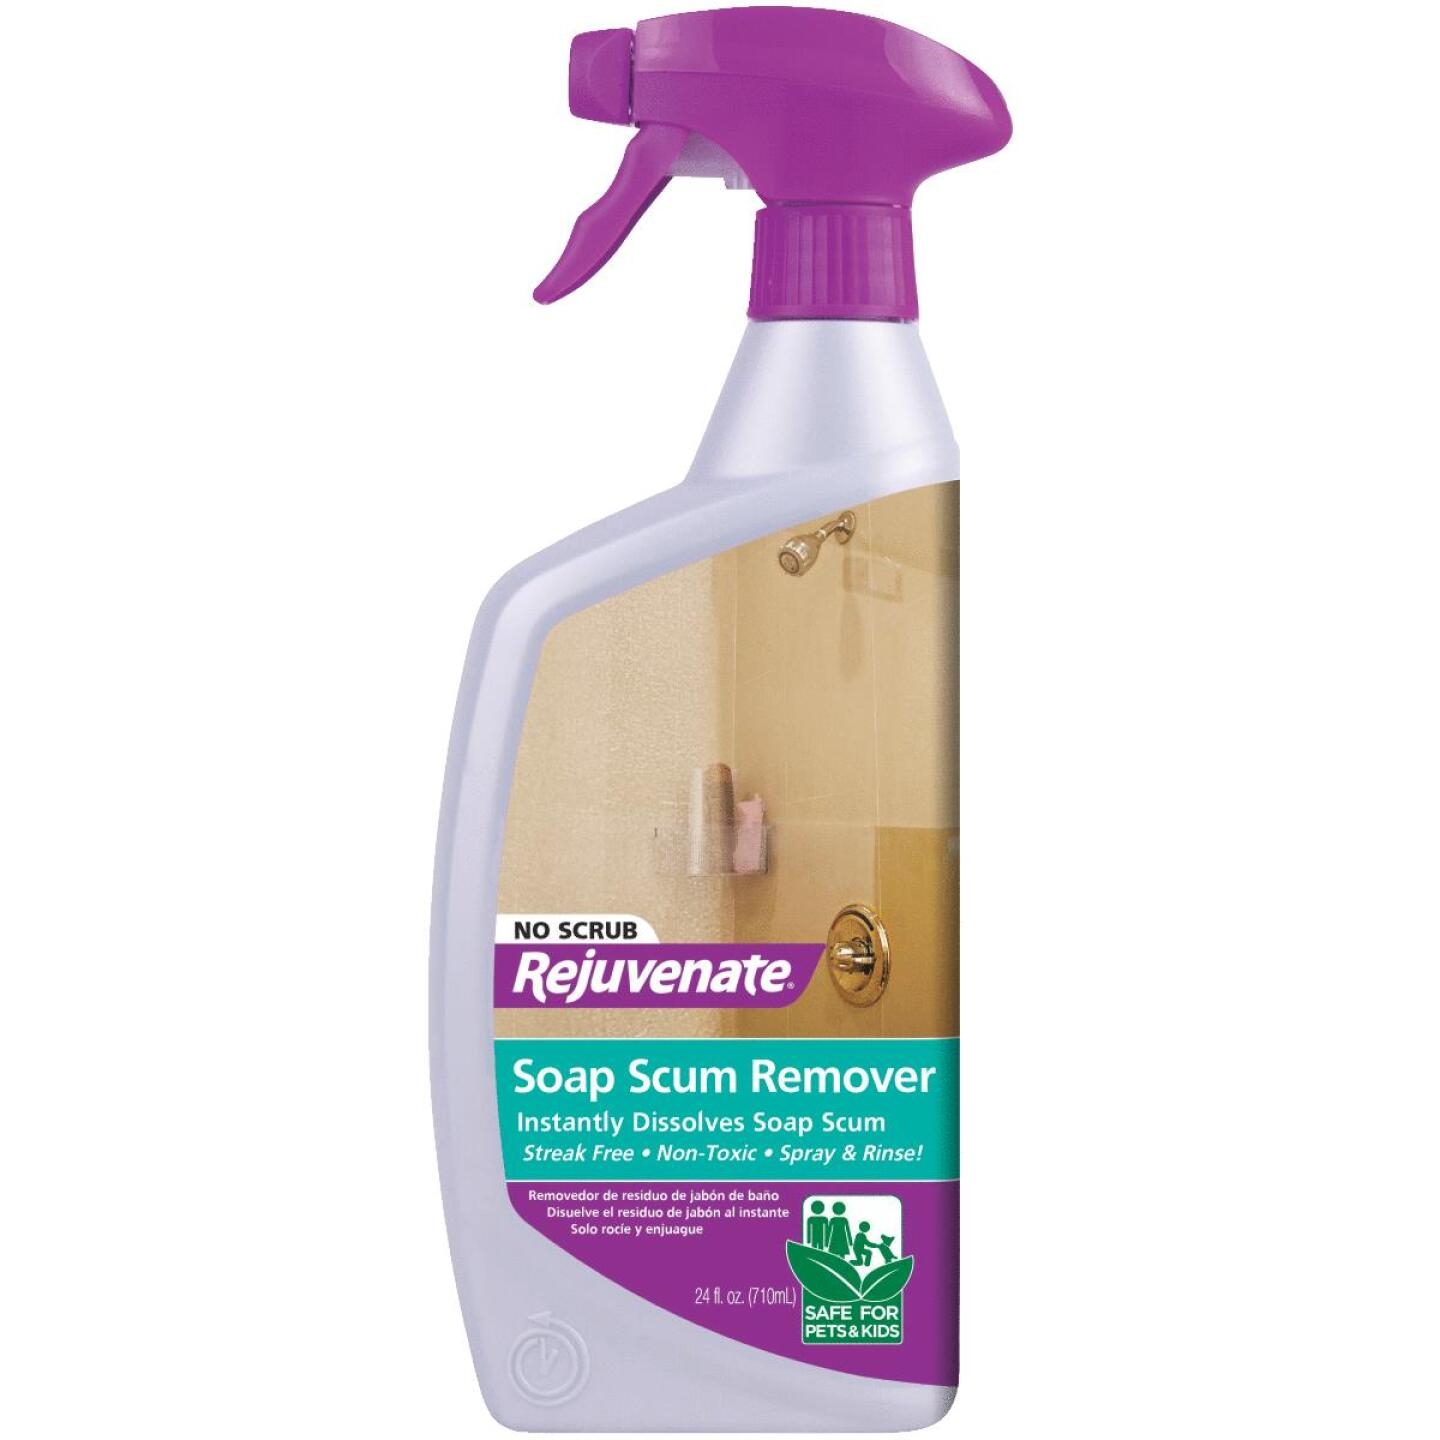 Rejuvenate 24 Oz. No Scrub Soap Scum Remover Image 1